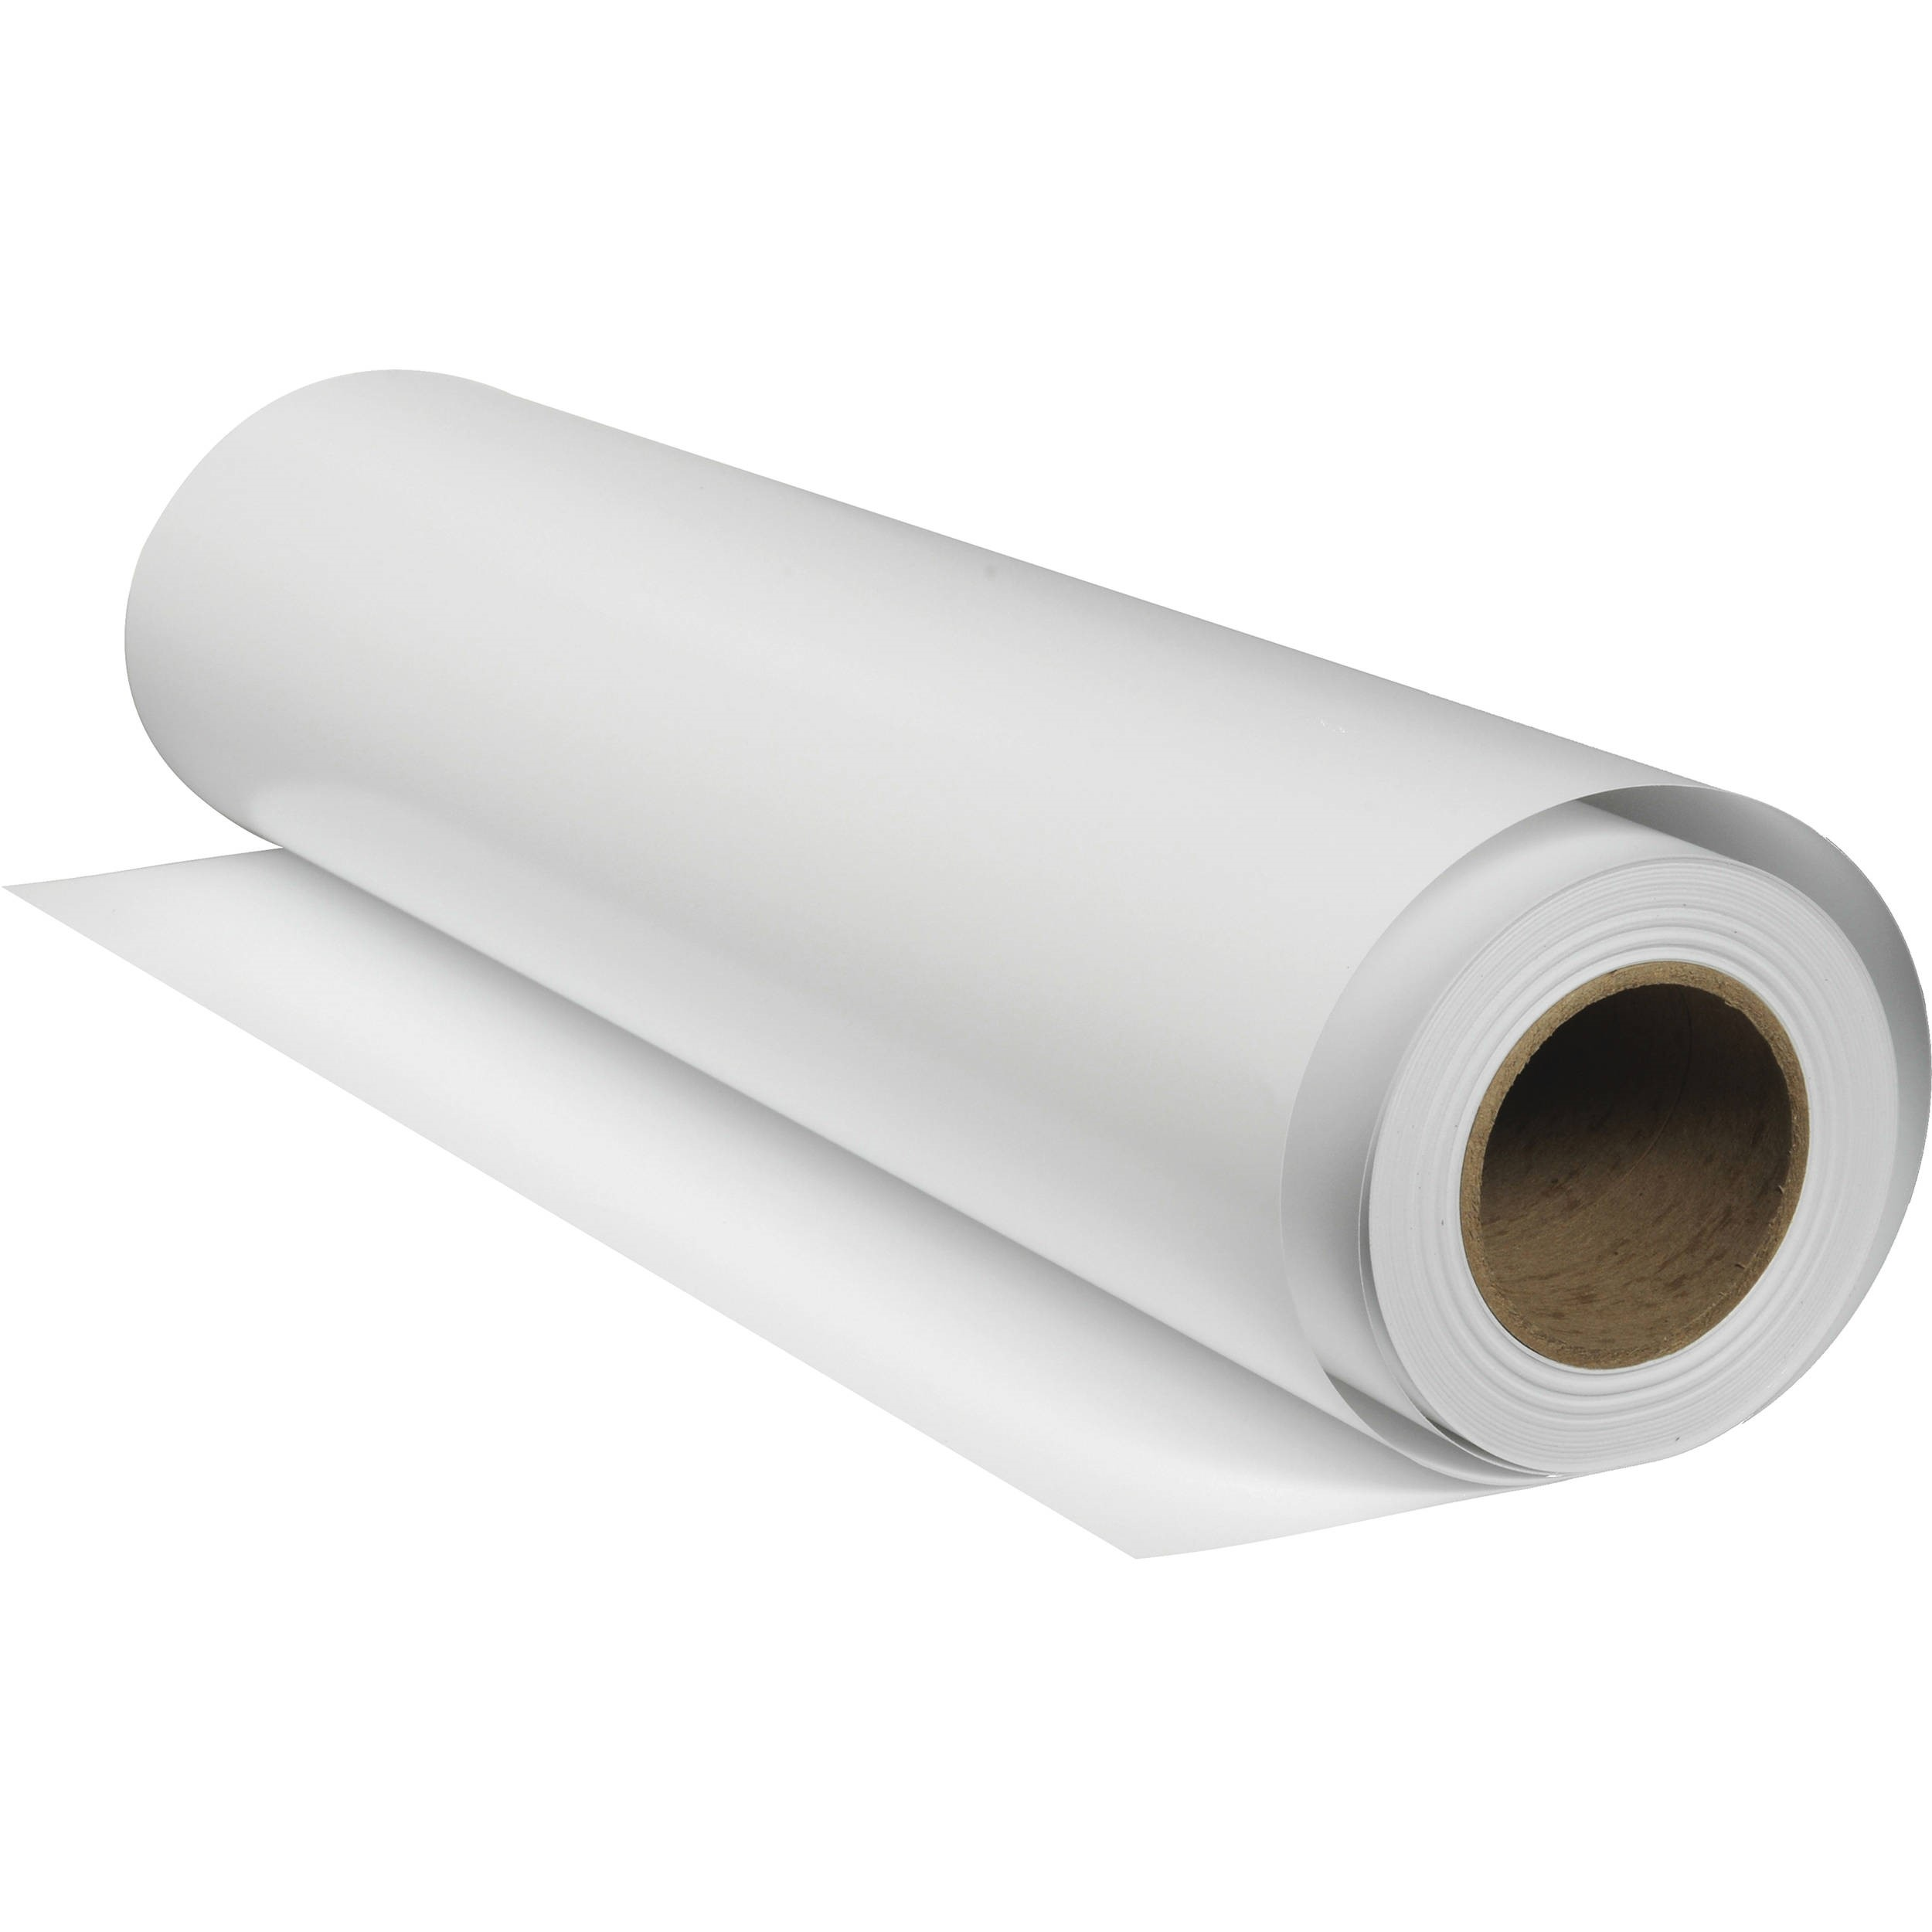 Transfer Sublimation Paper for Epson Printers 24 inch x 100